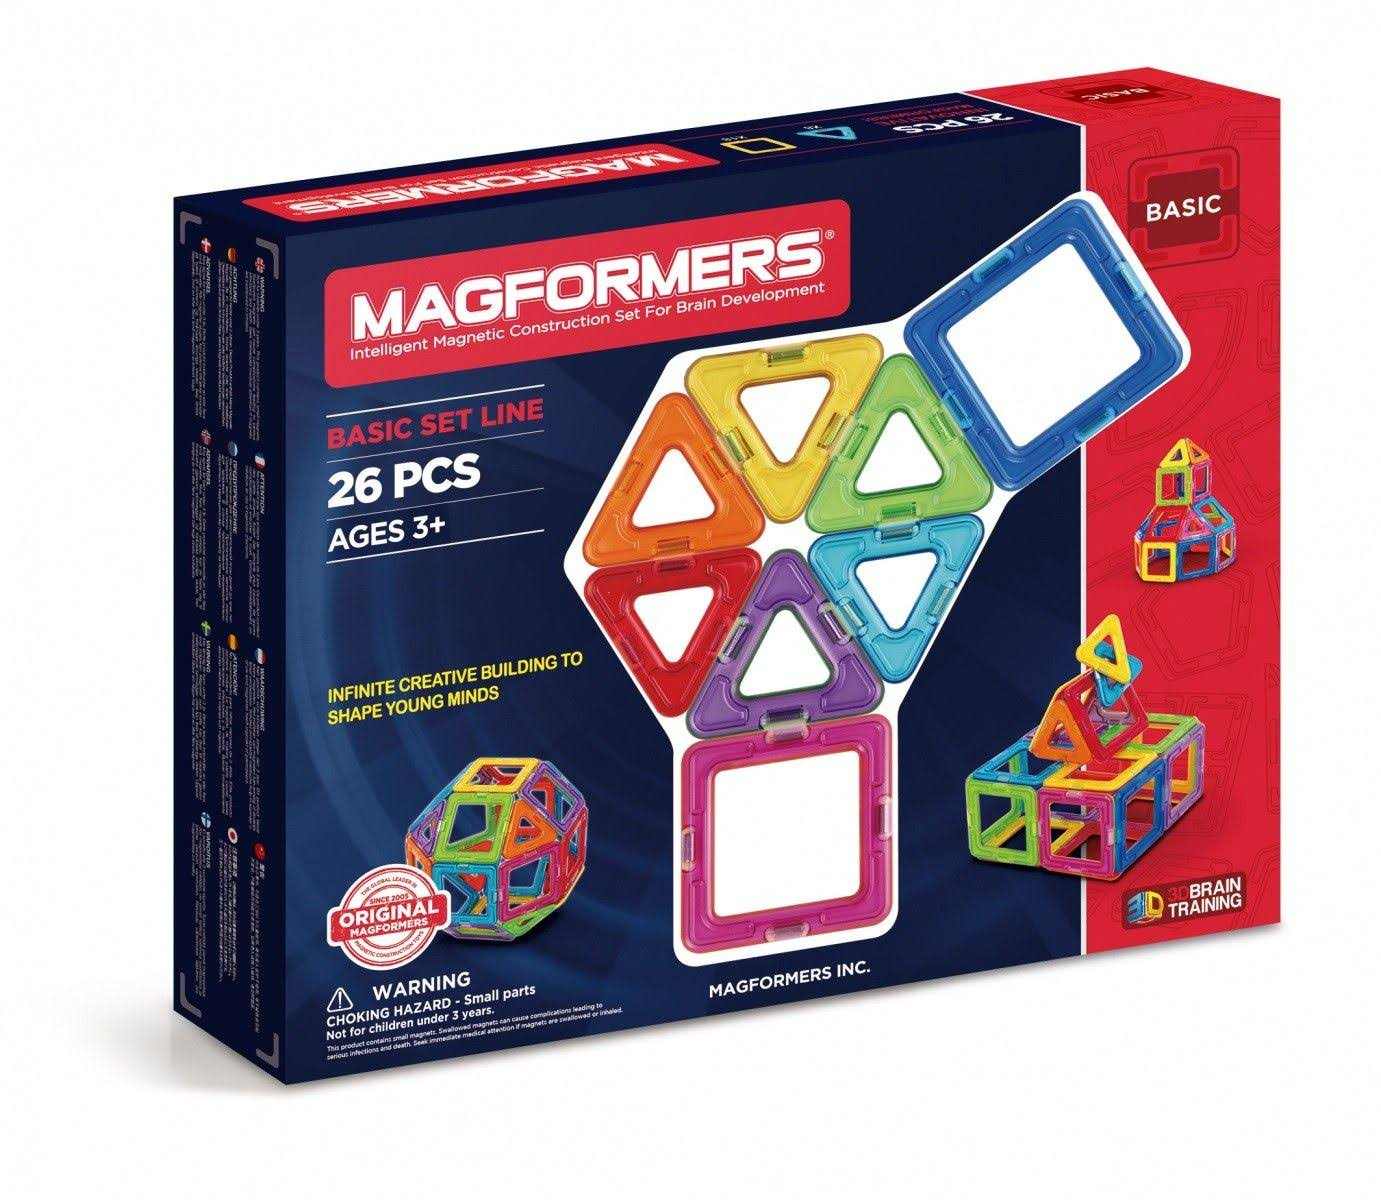 Magformers Magnetic Building Set - 26 Pieces